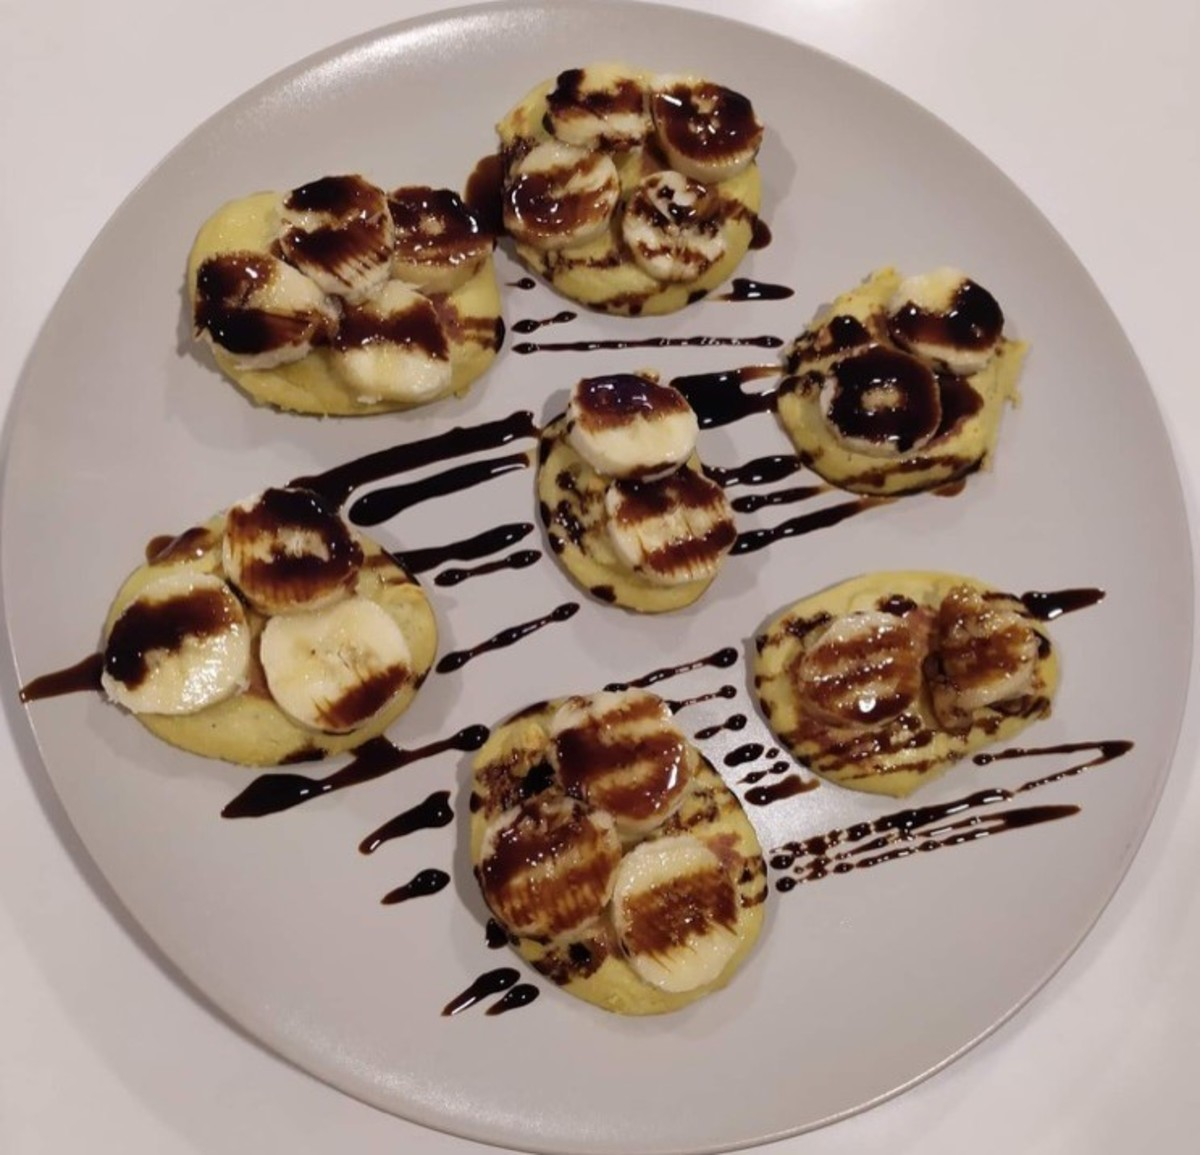 Healthy Pancakes (Gluten-Free and Lactose-Free)